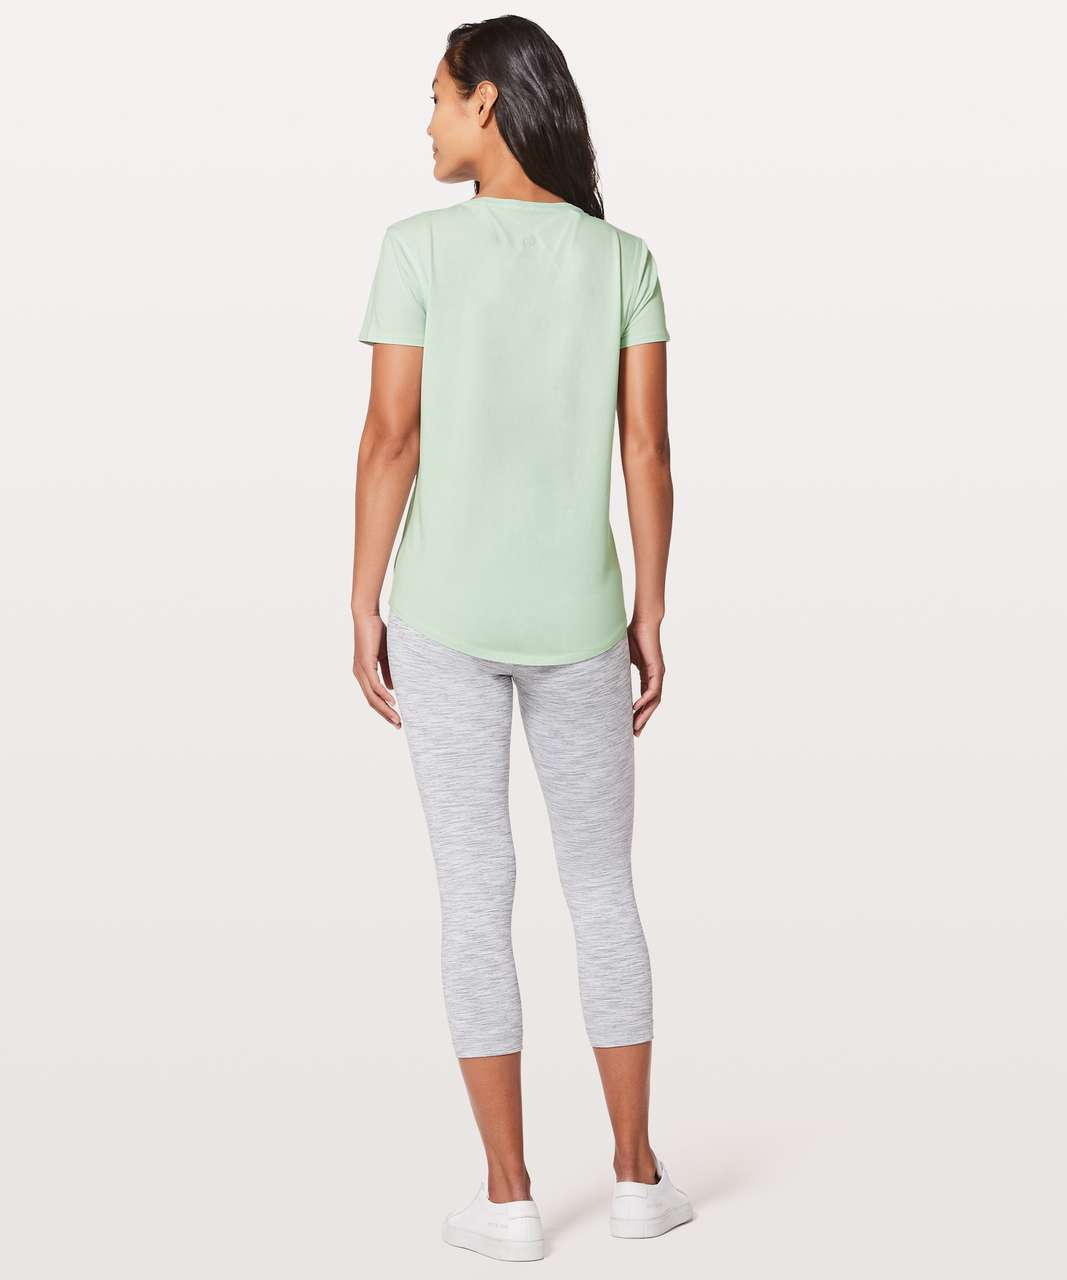 Lululemon Love Crew III - Sea Breeze